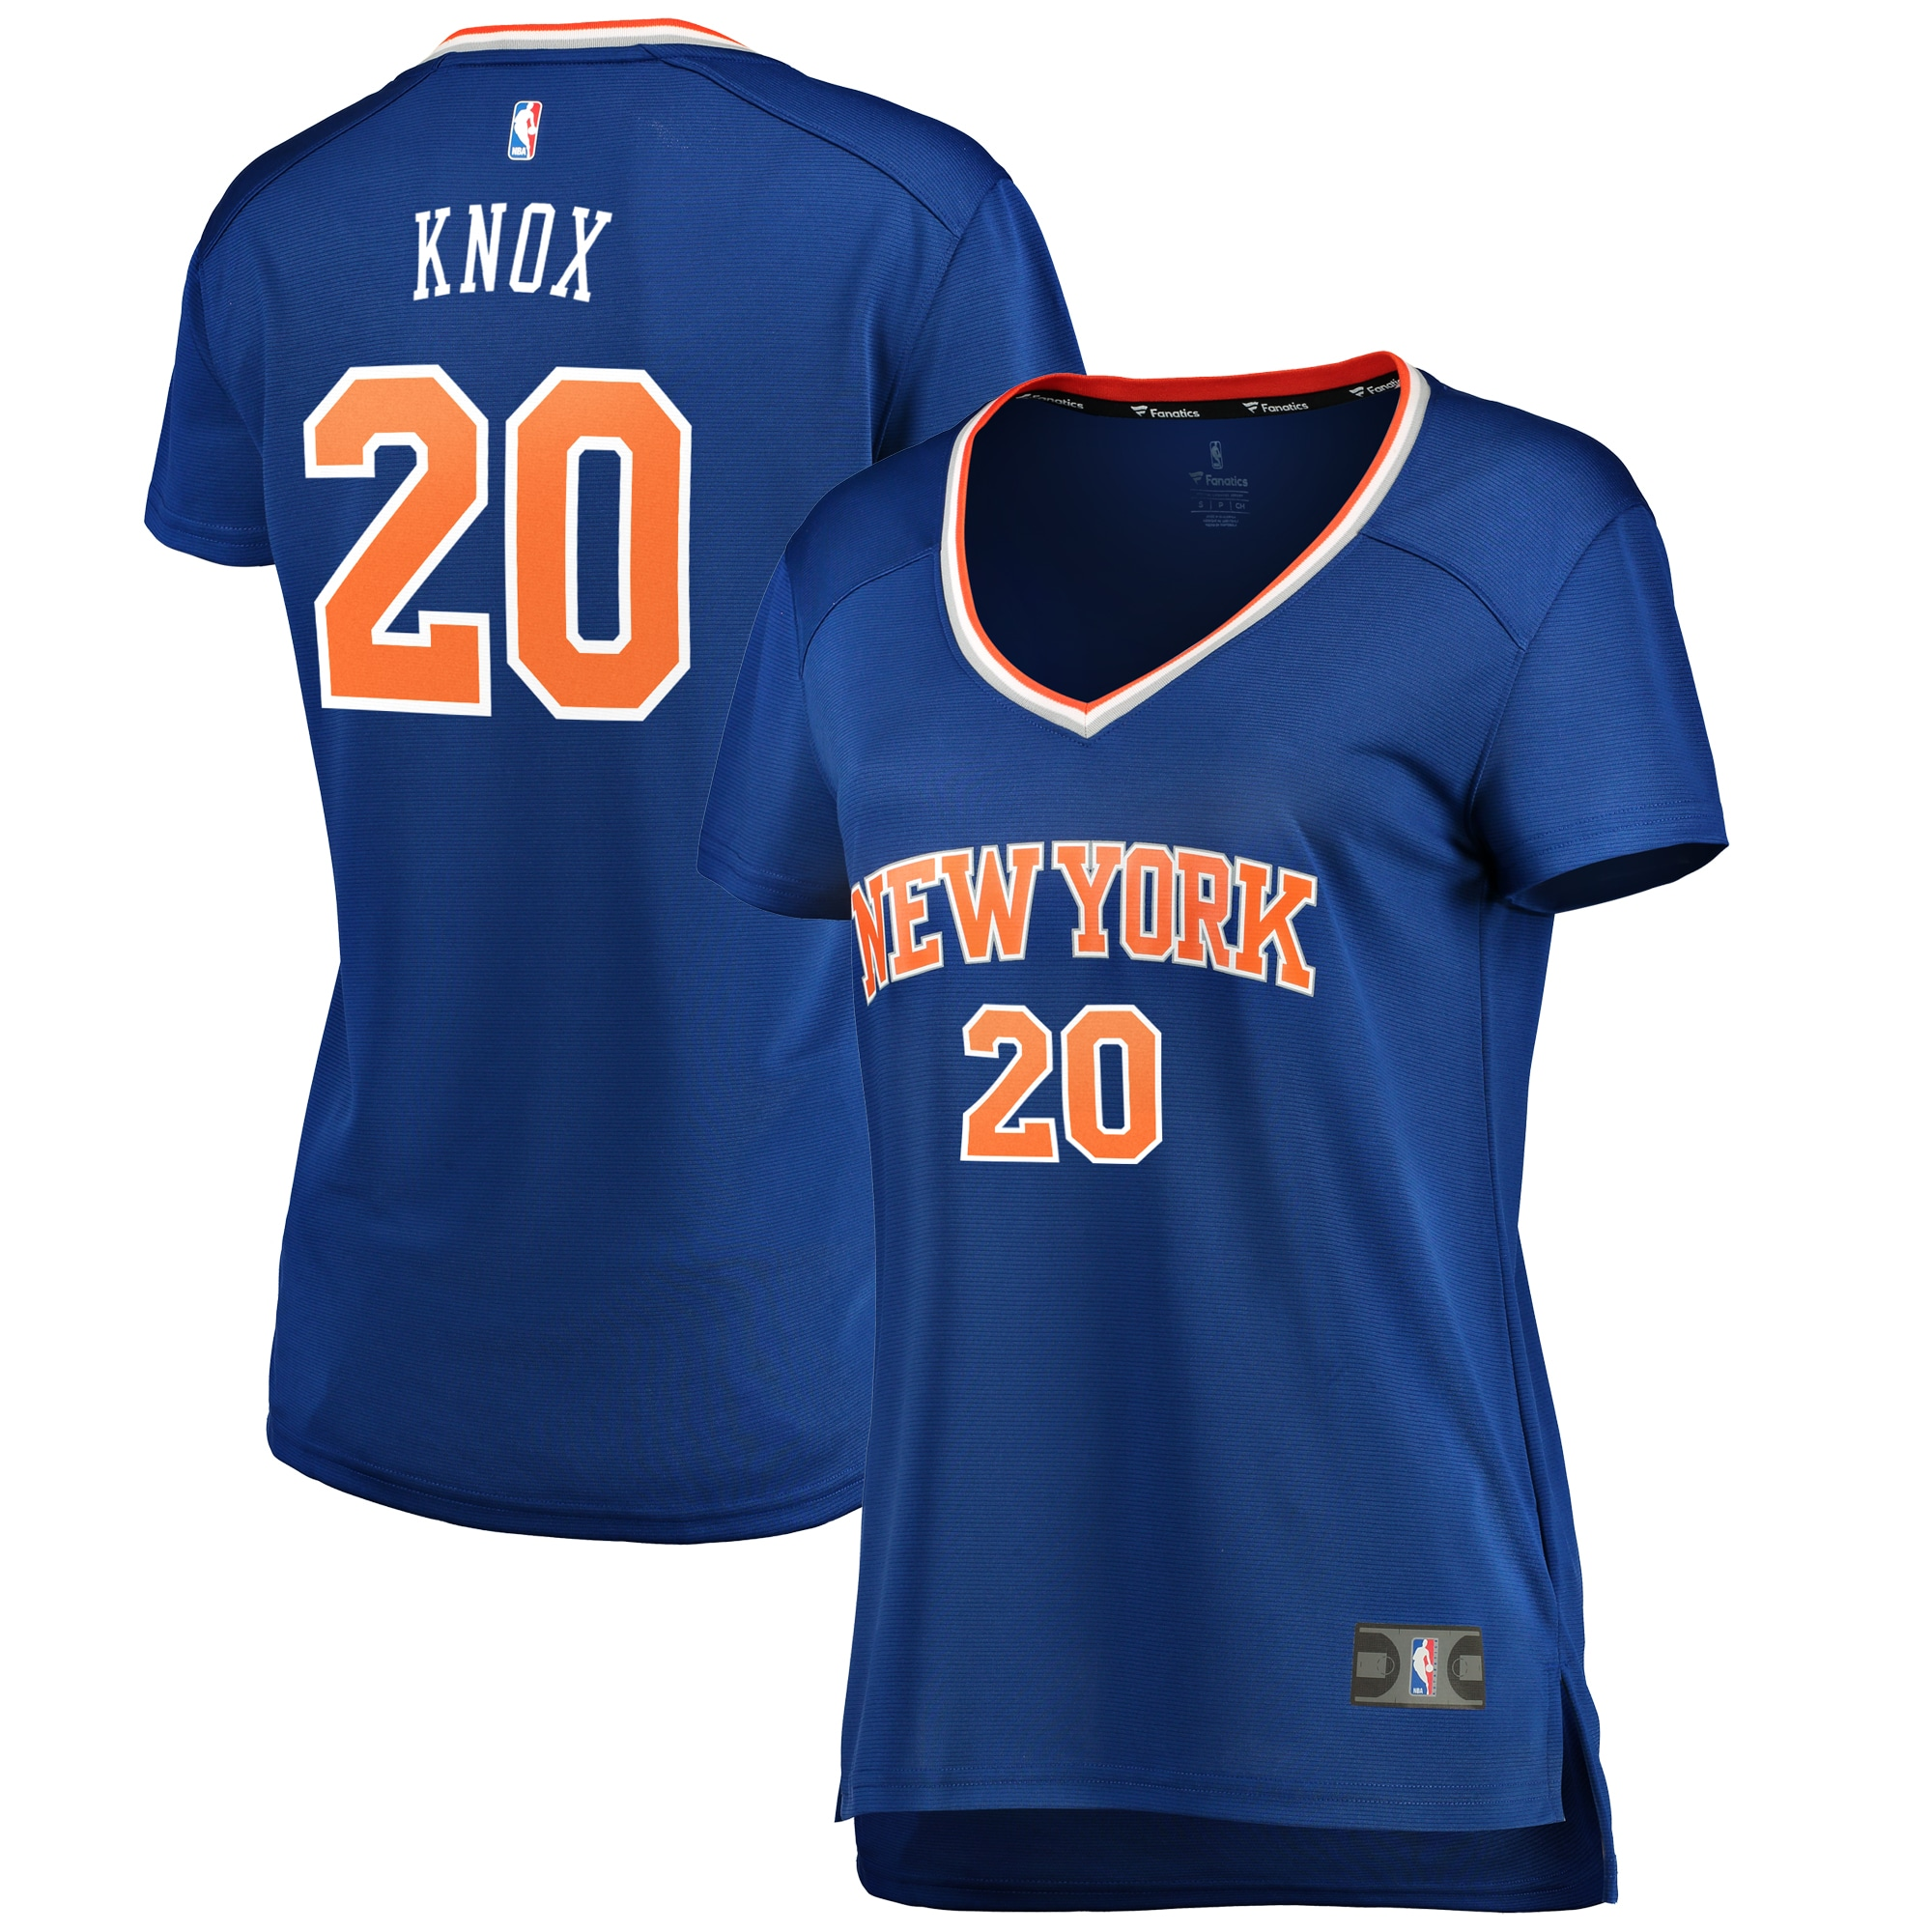 Kevin Knox New York Knicks Fanatics Branded Women's Fast Break Replica Jersey Blue - Icon Edition